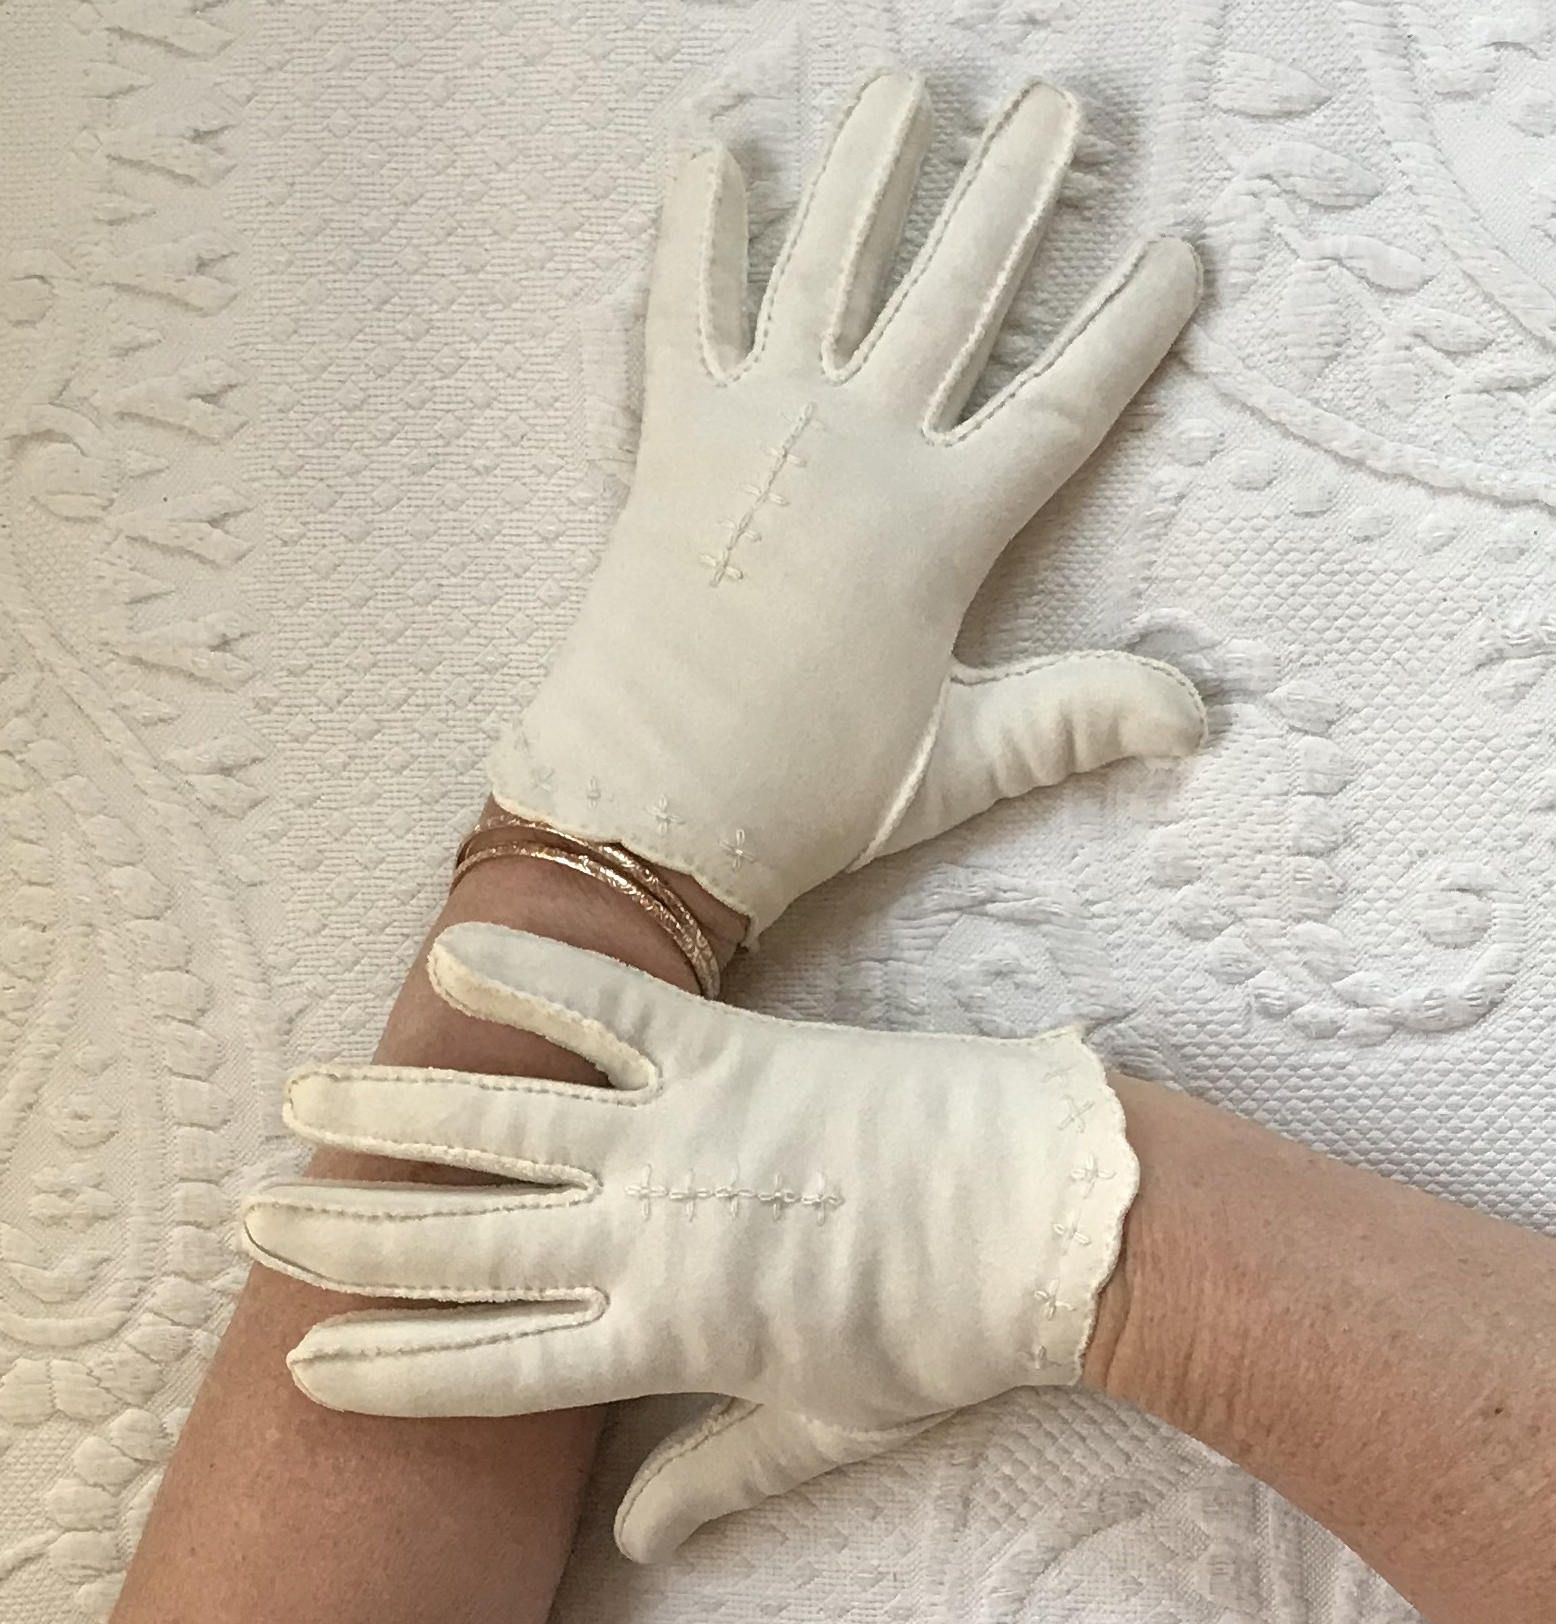 Vintage 1960/'s Women/'s Short Cotton Gloves in Cream White with Embroidery